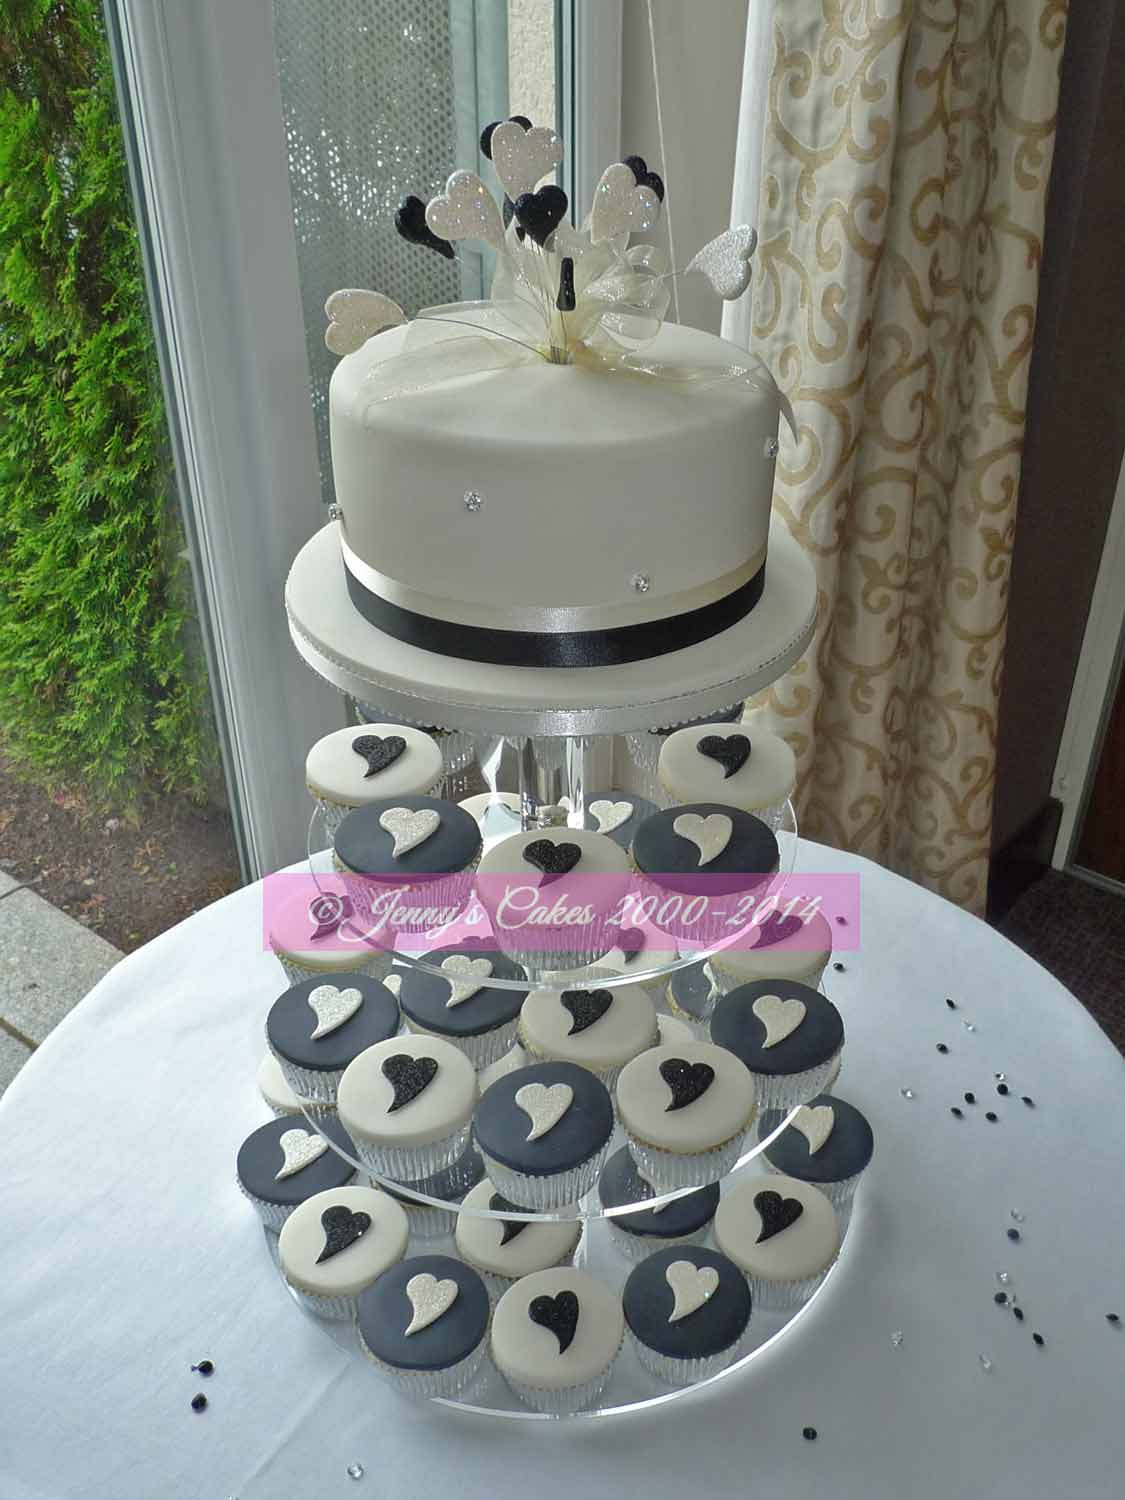 Wedding Cupcakes Cost  Cupcake wedding cake prices idea in 2017